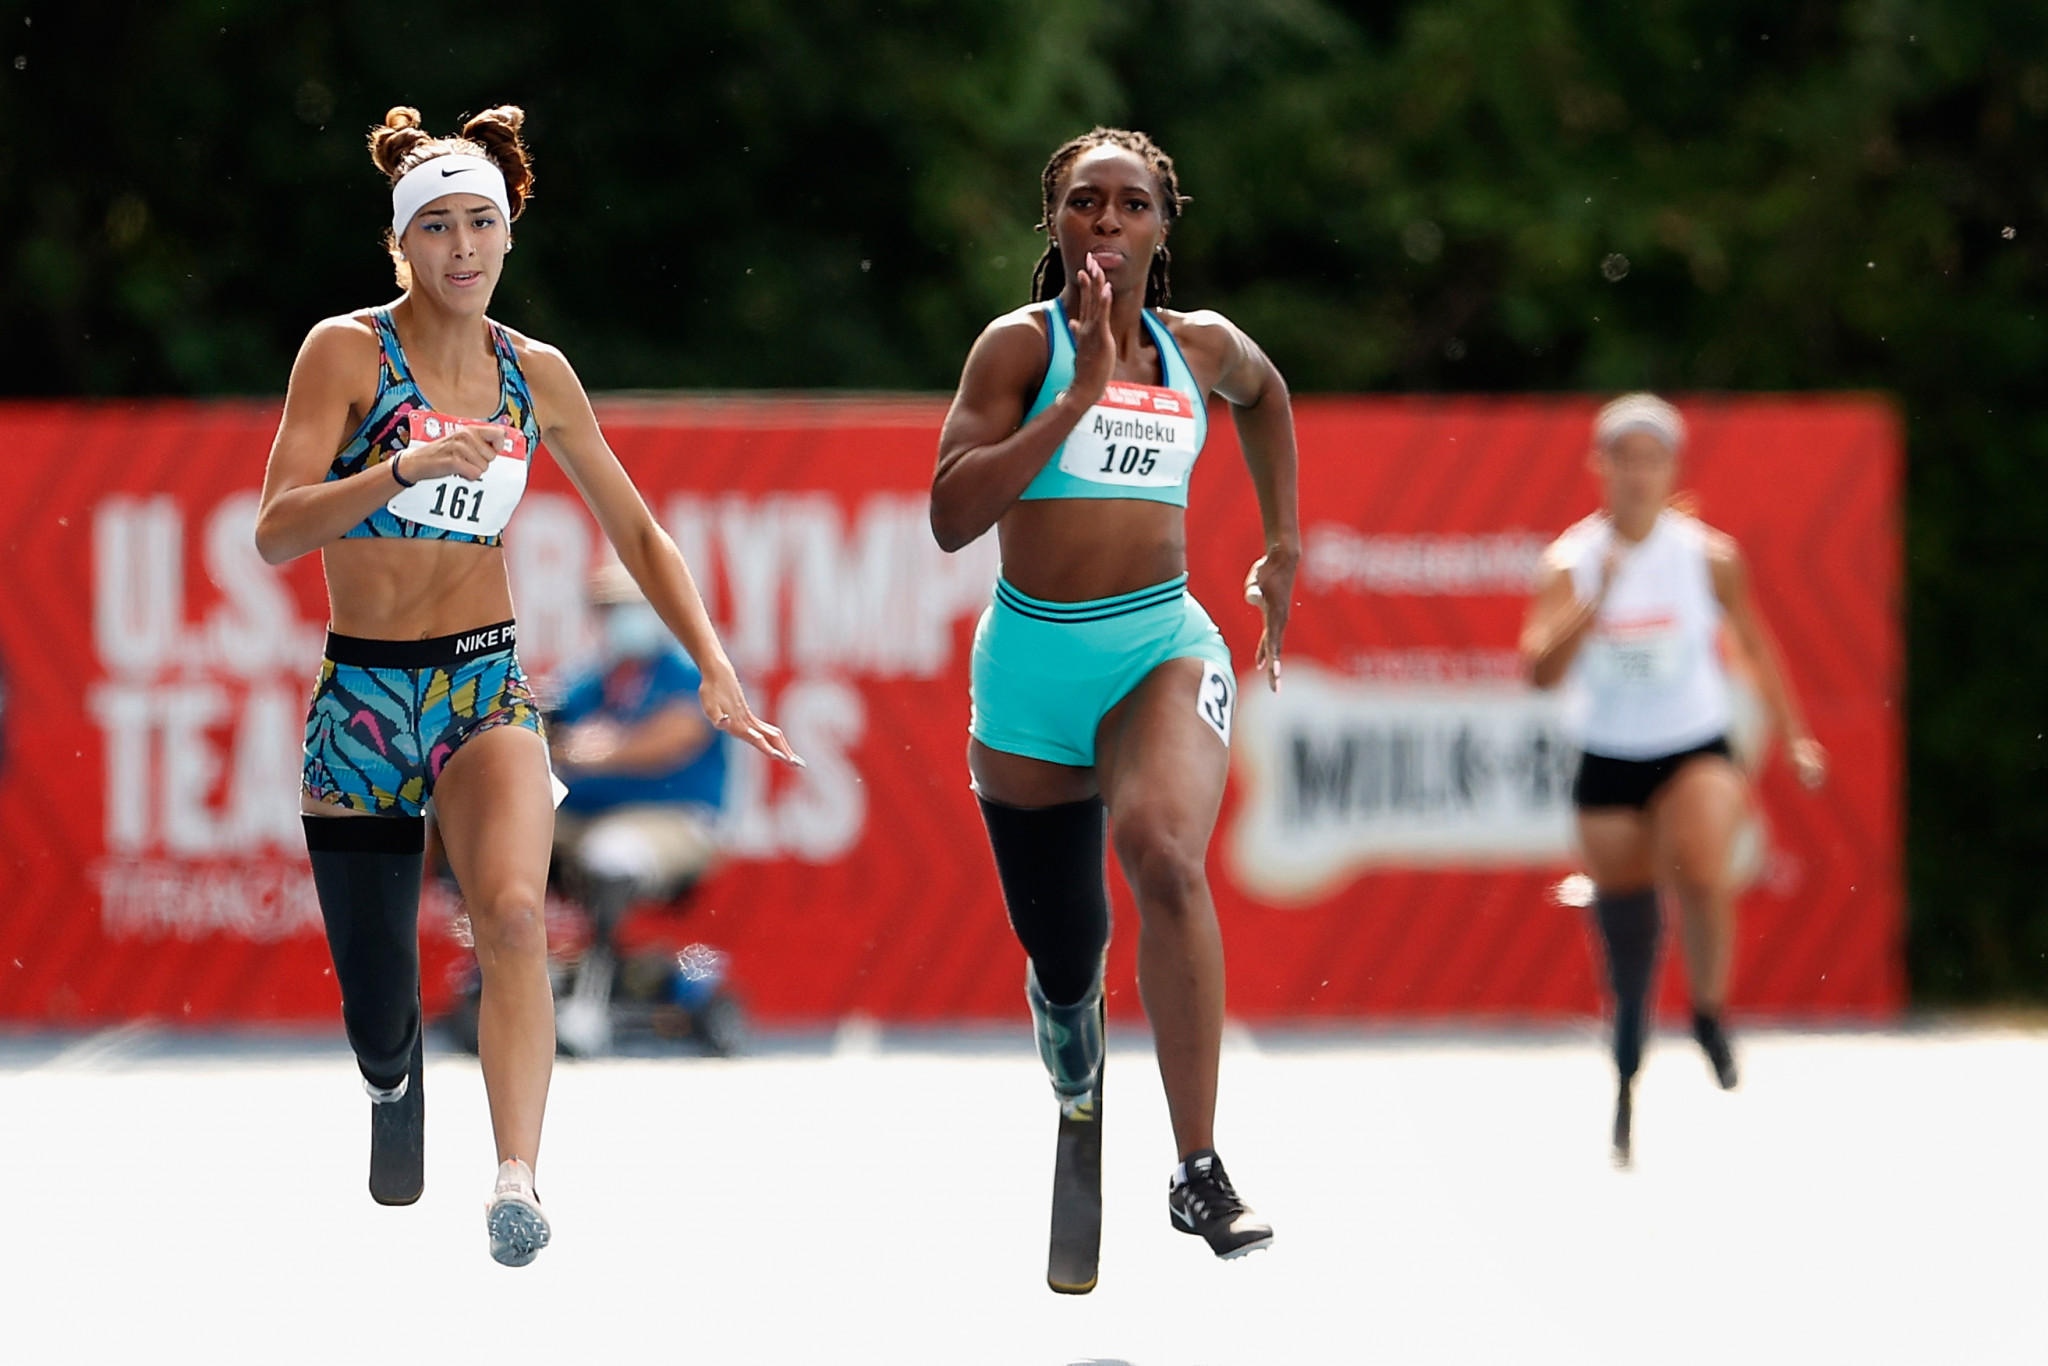 Femita Ayanbeku, centre, is part of the Show the World campaign organised by the USOPC in the build-up to the Paralympic Games in Tokyo ©Getty Images